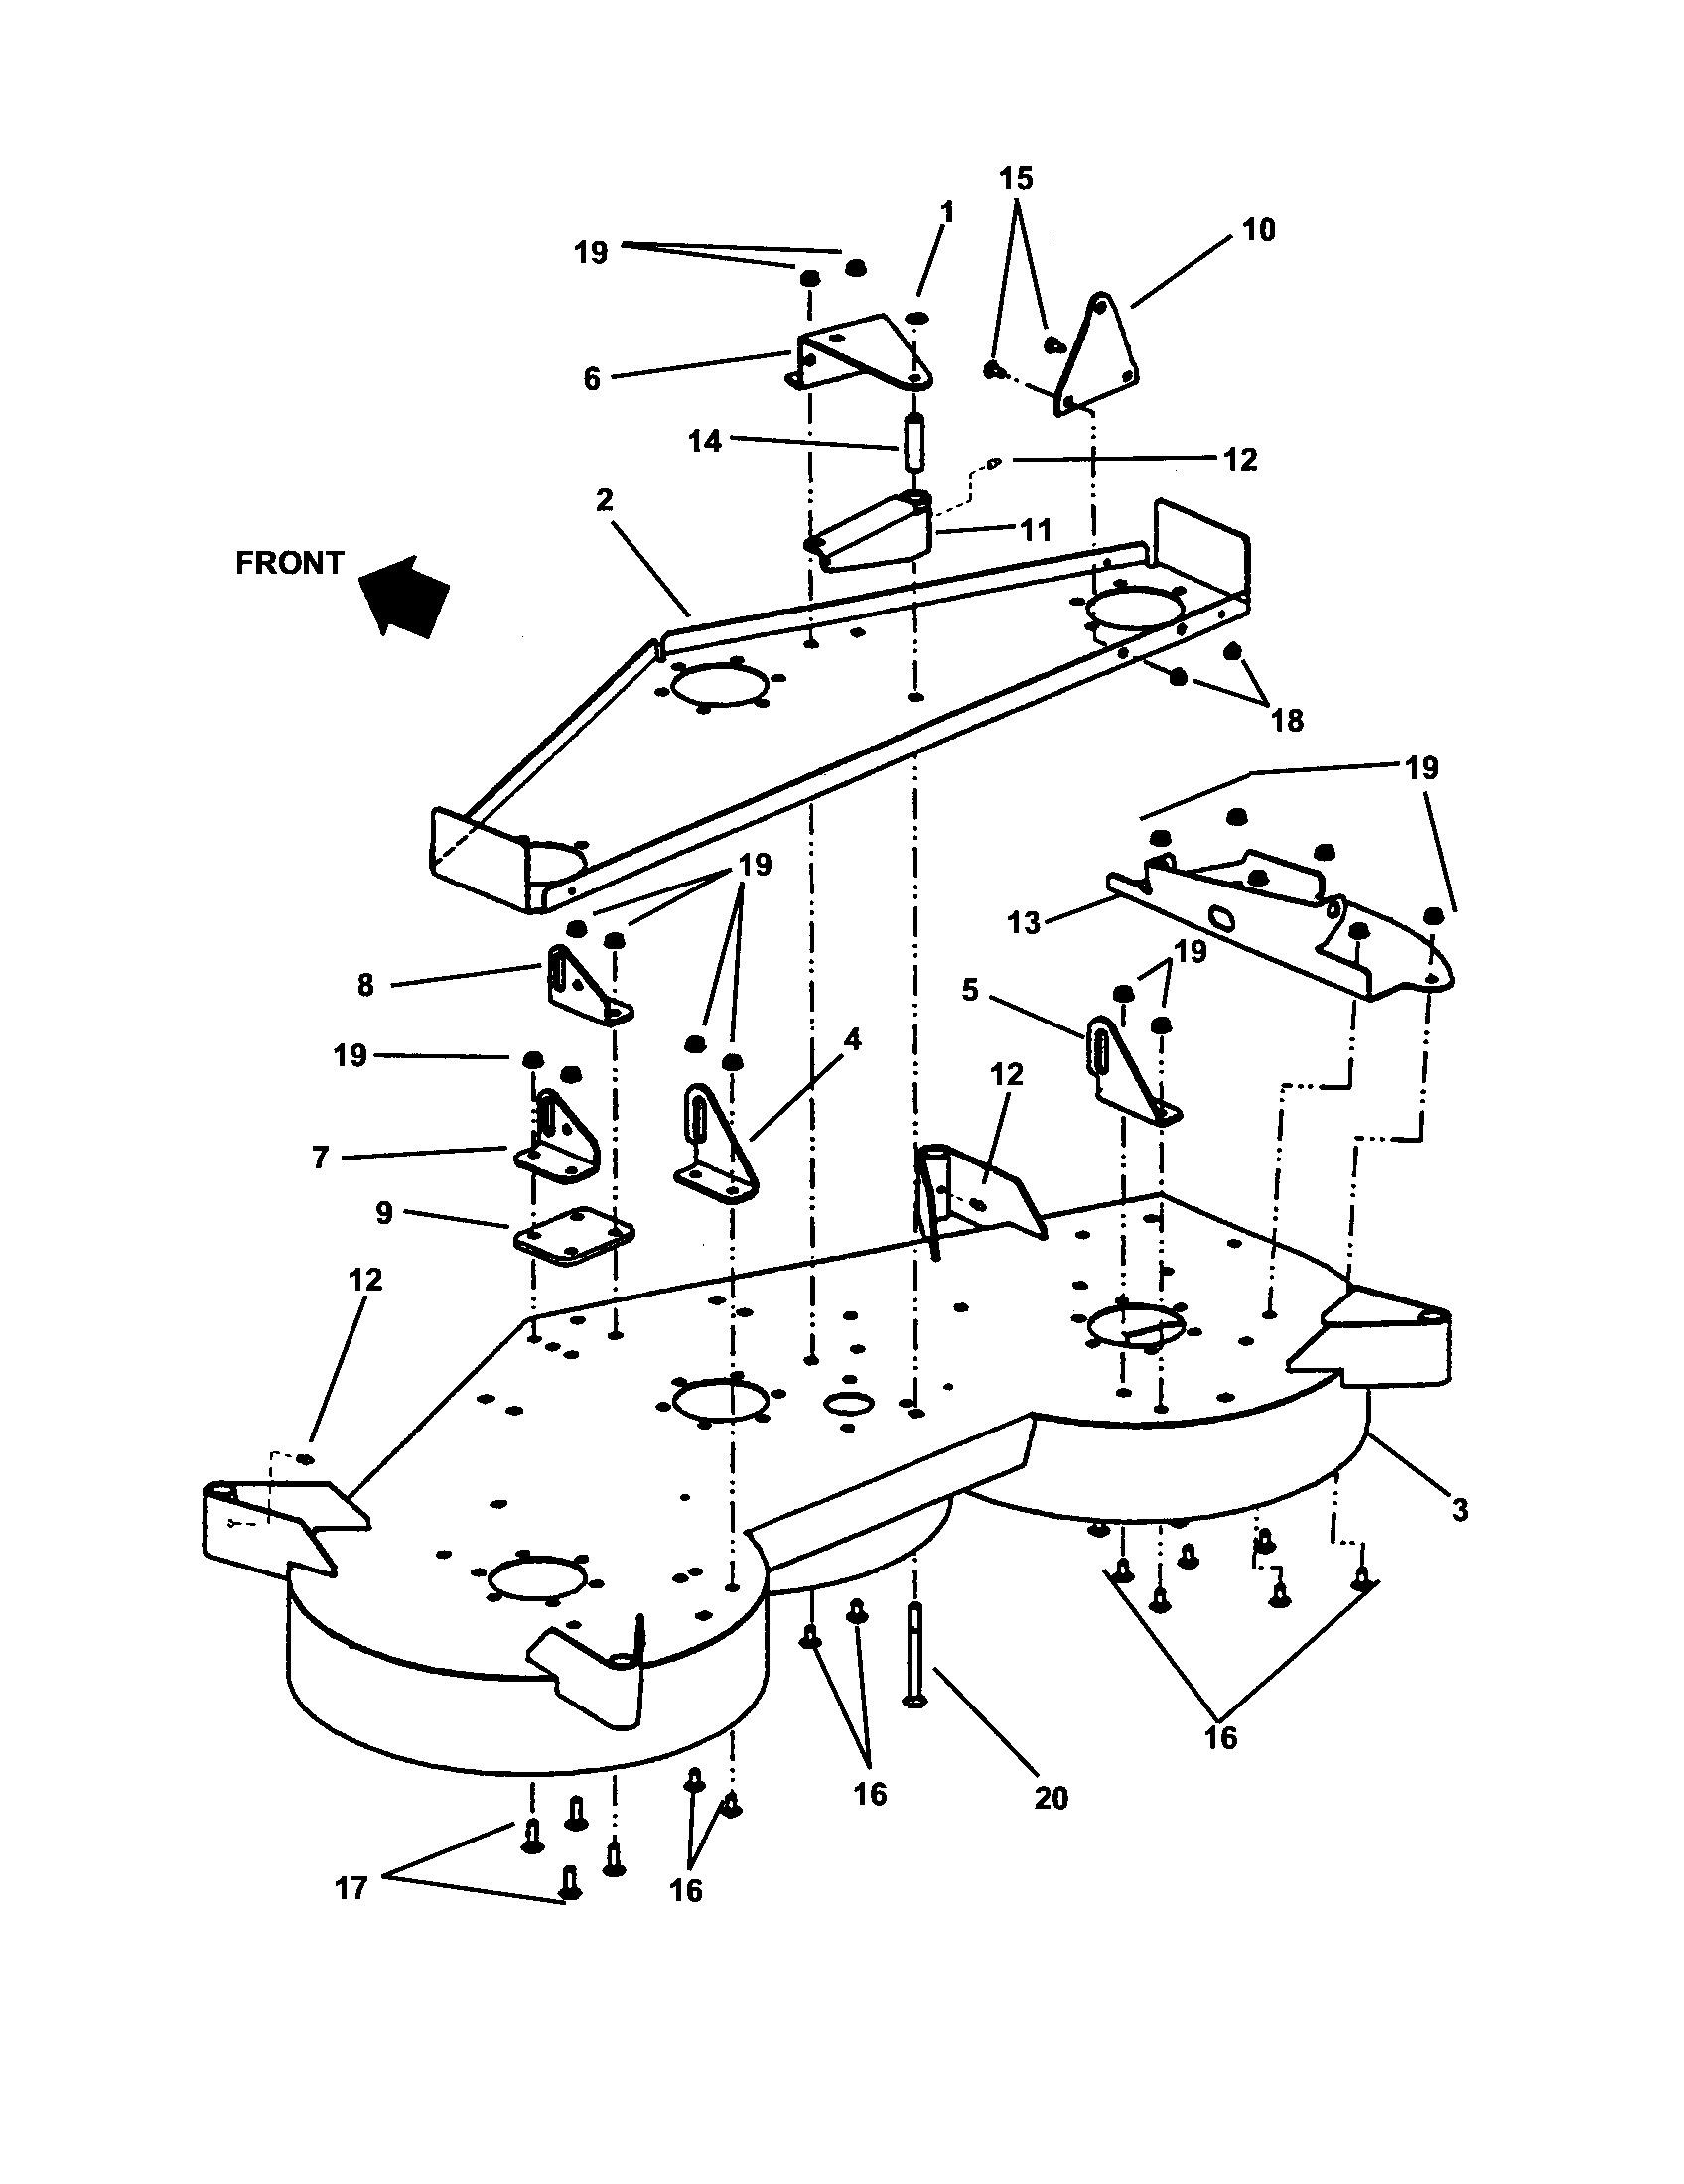 1993 Ford Probe Engine Wire Harness : 35 Wiring Diagram